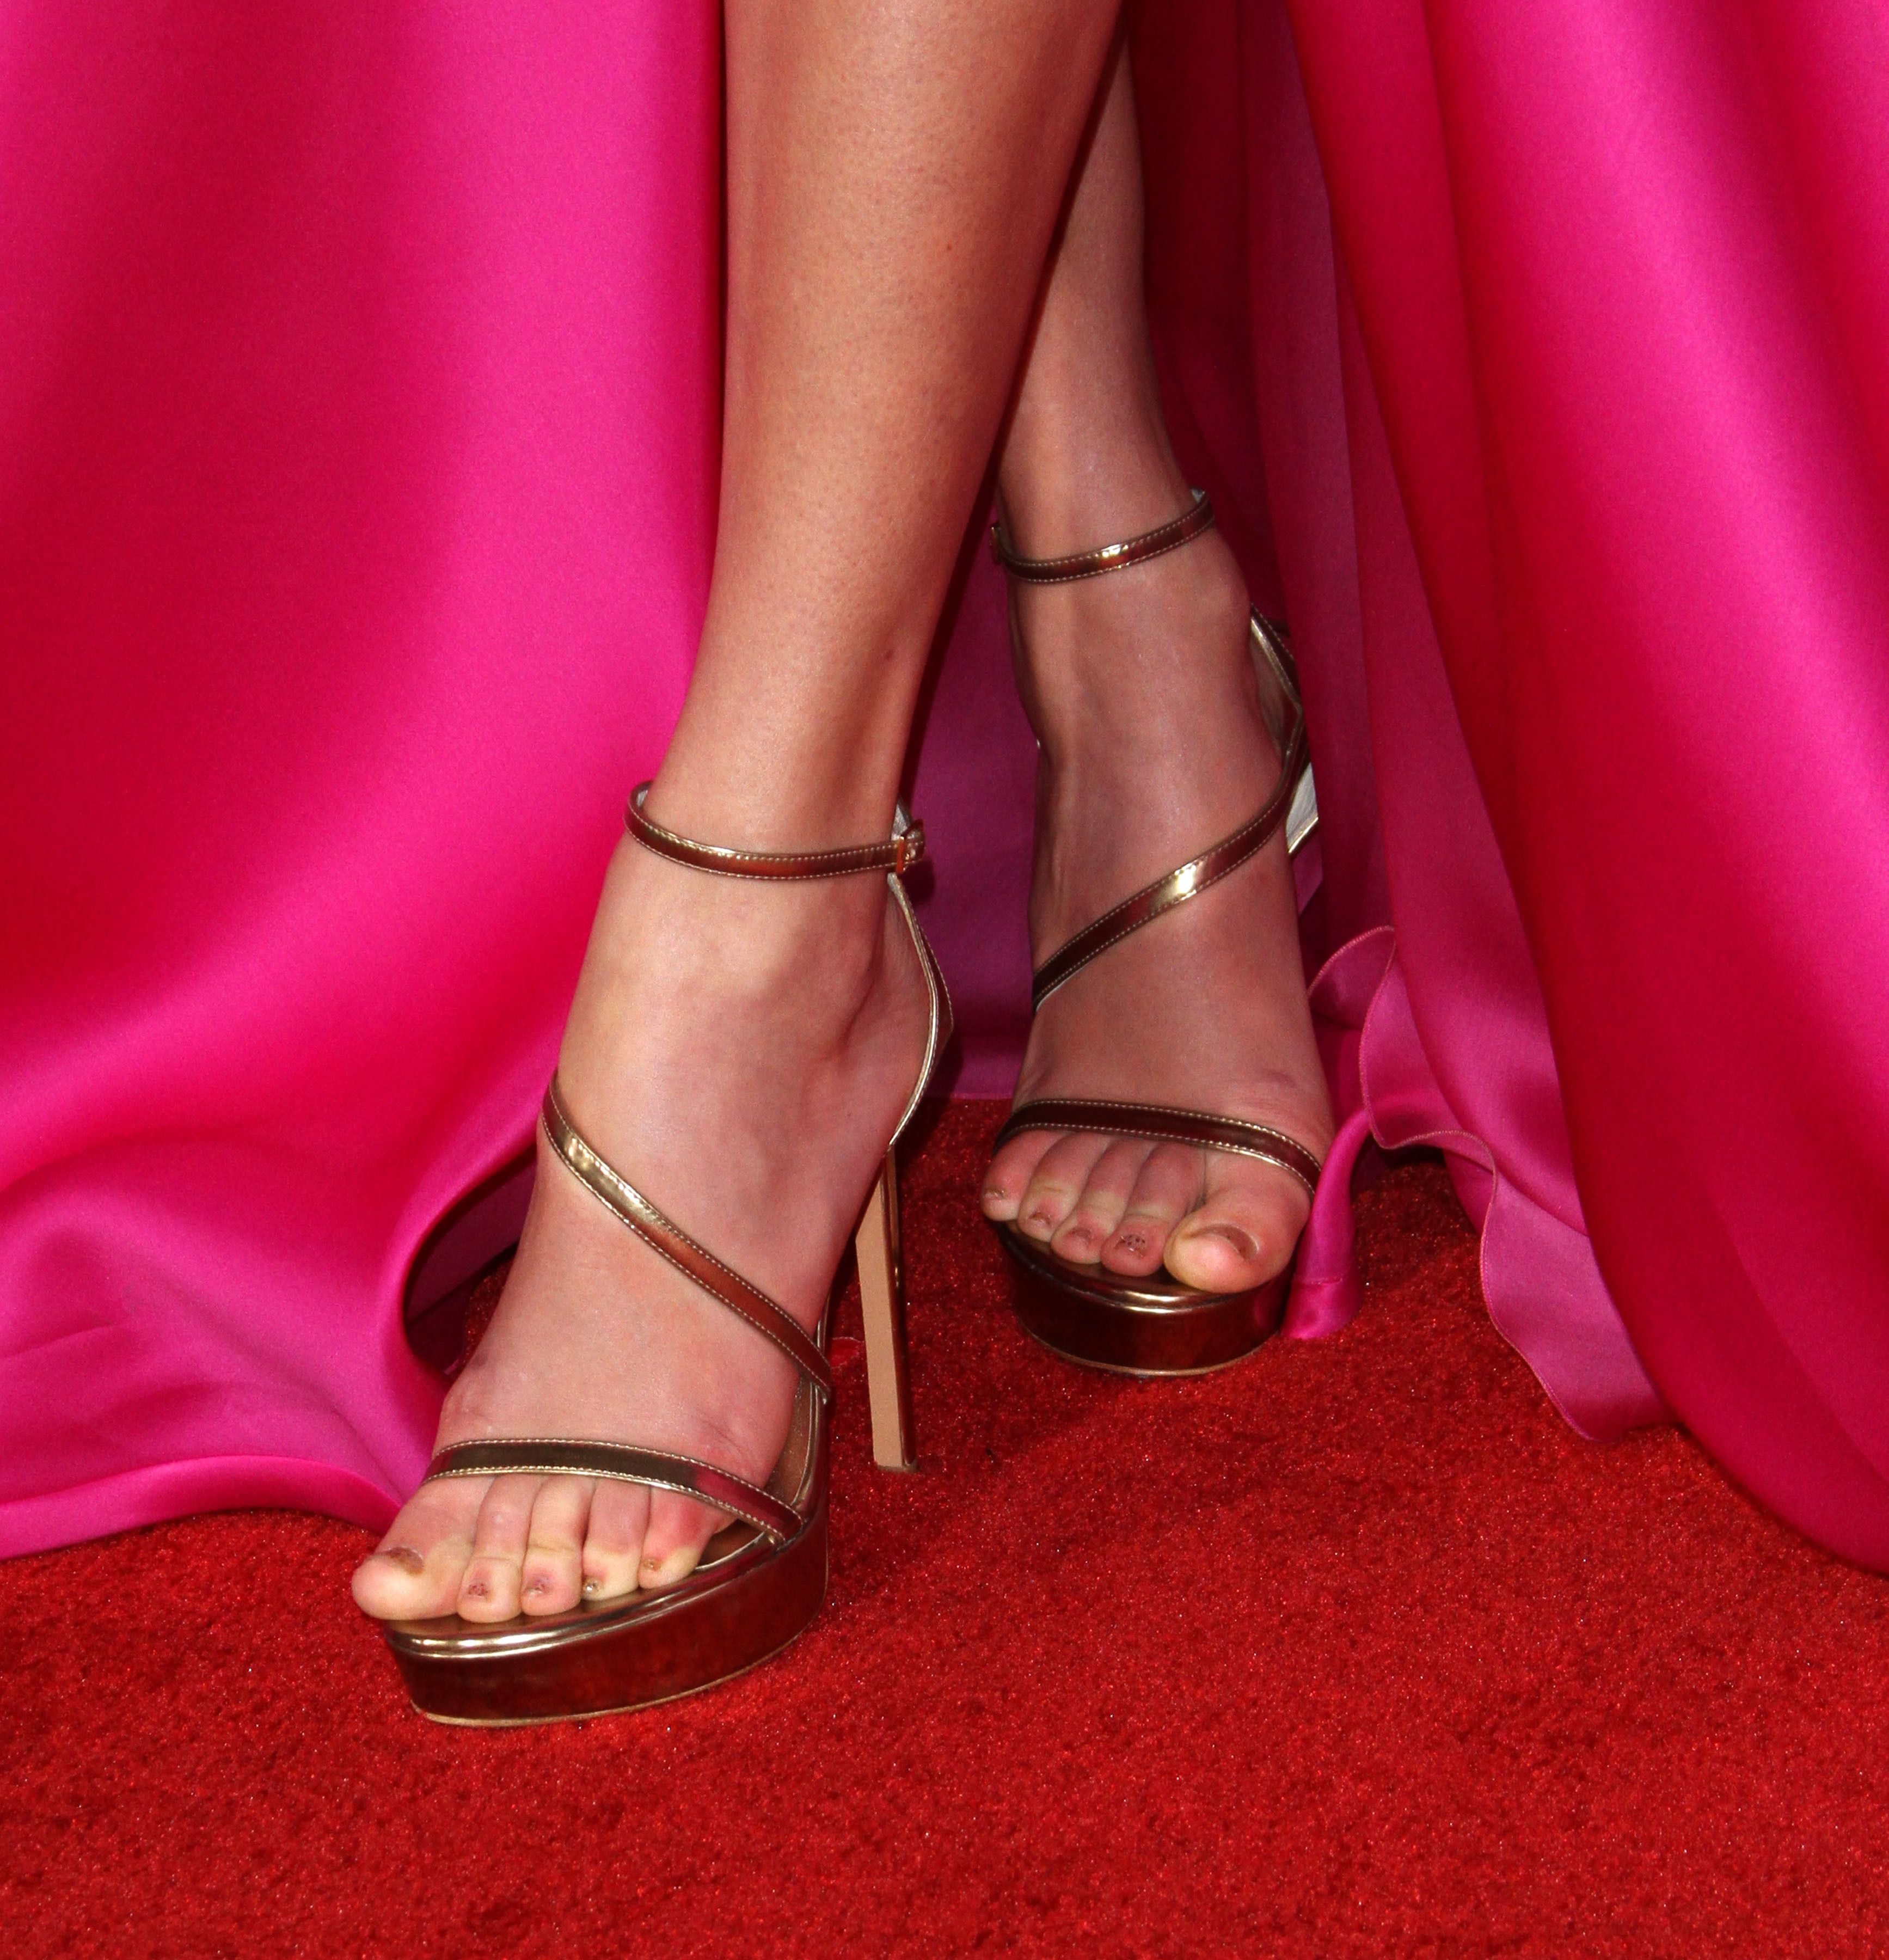 Taylor Swift' Feet